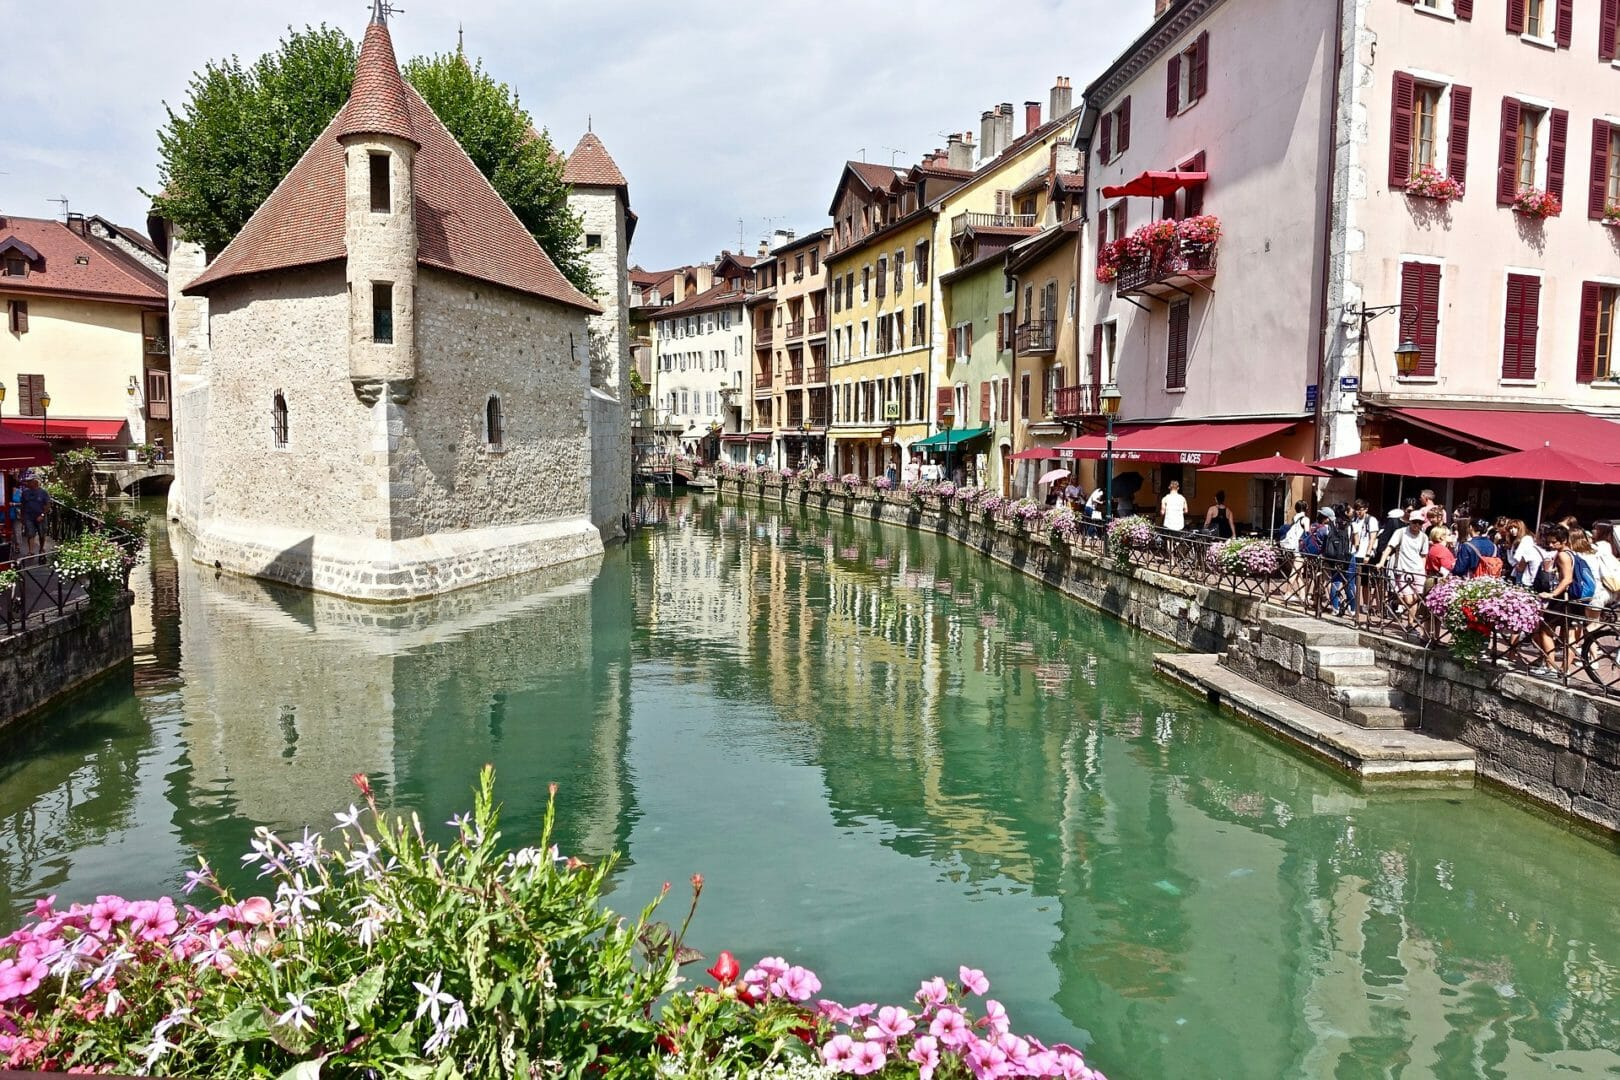 Annecy canaux - Voyager sans avion